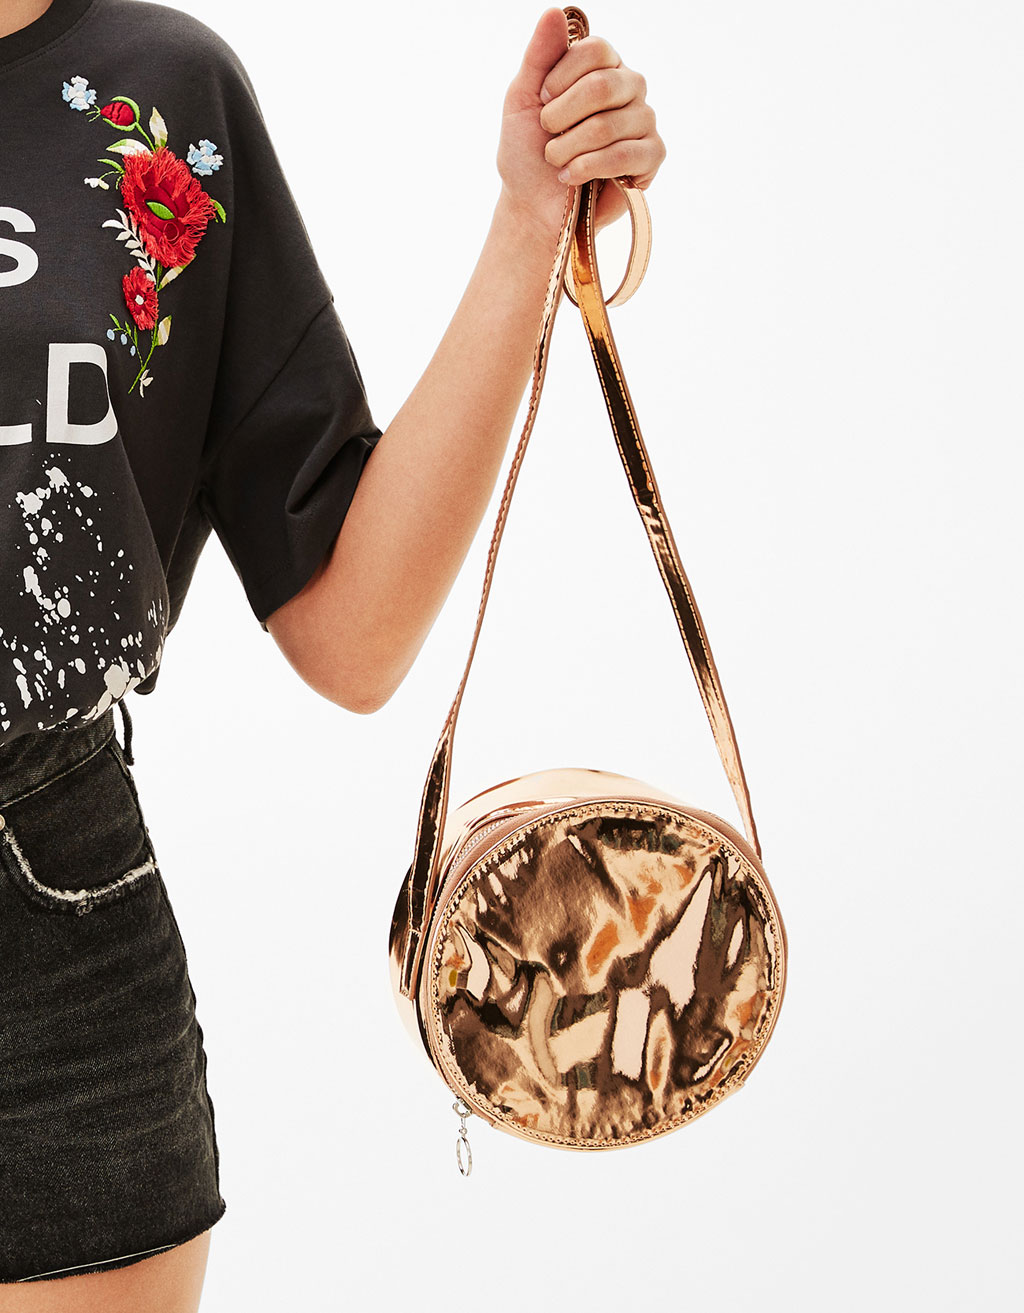 Rounded metallic bag